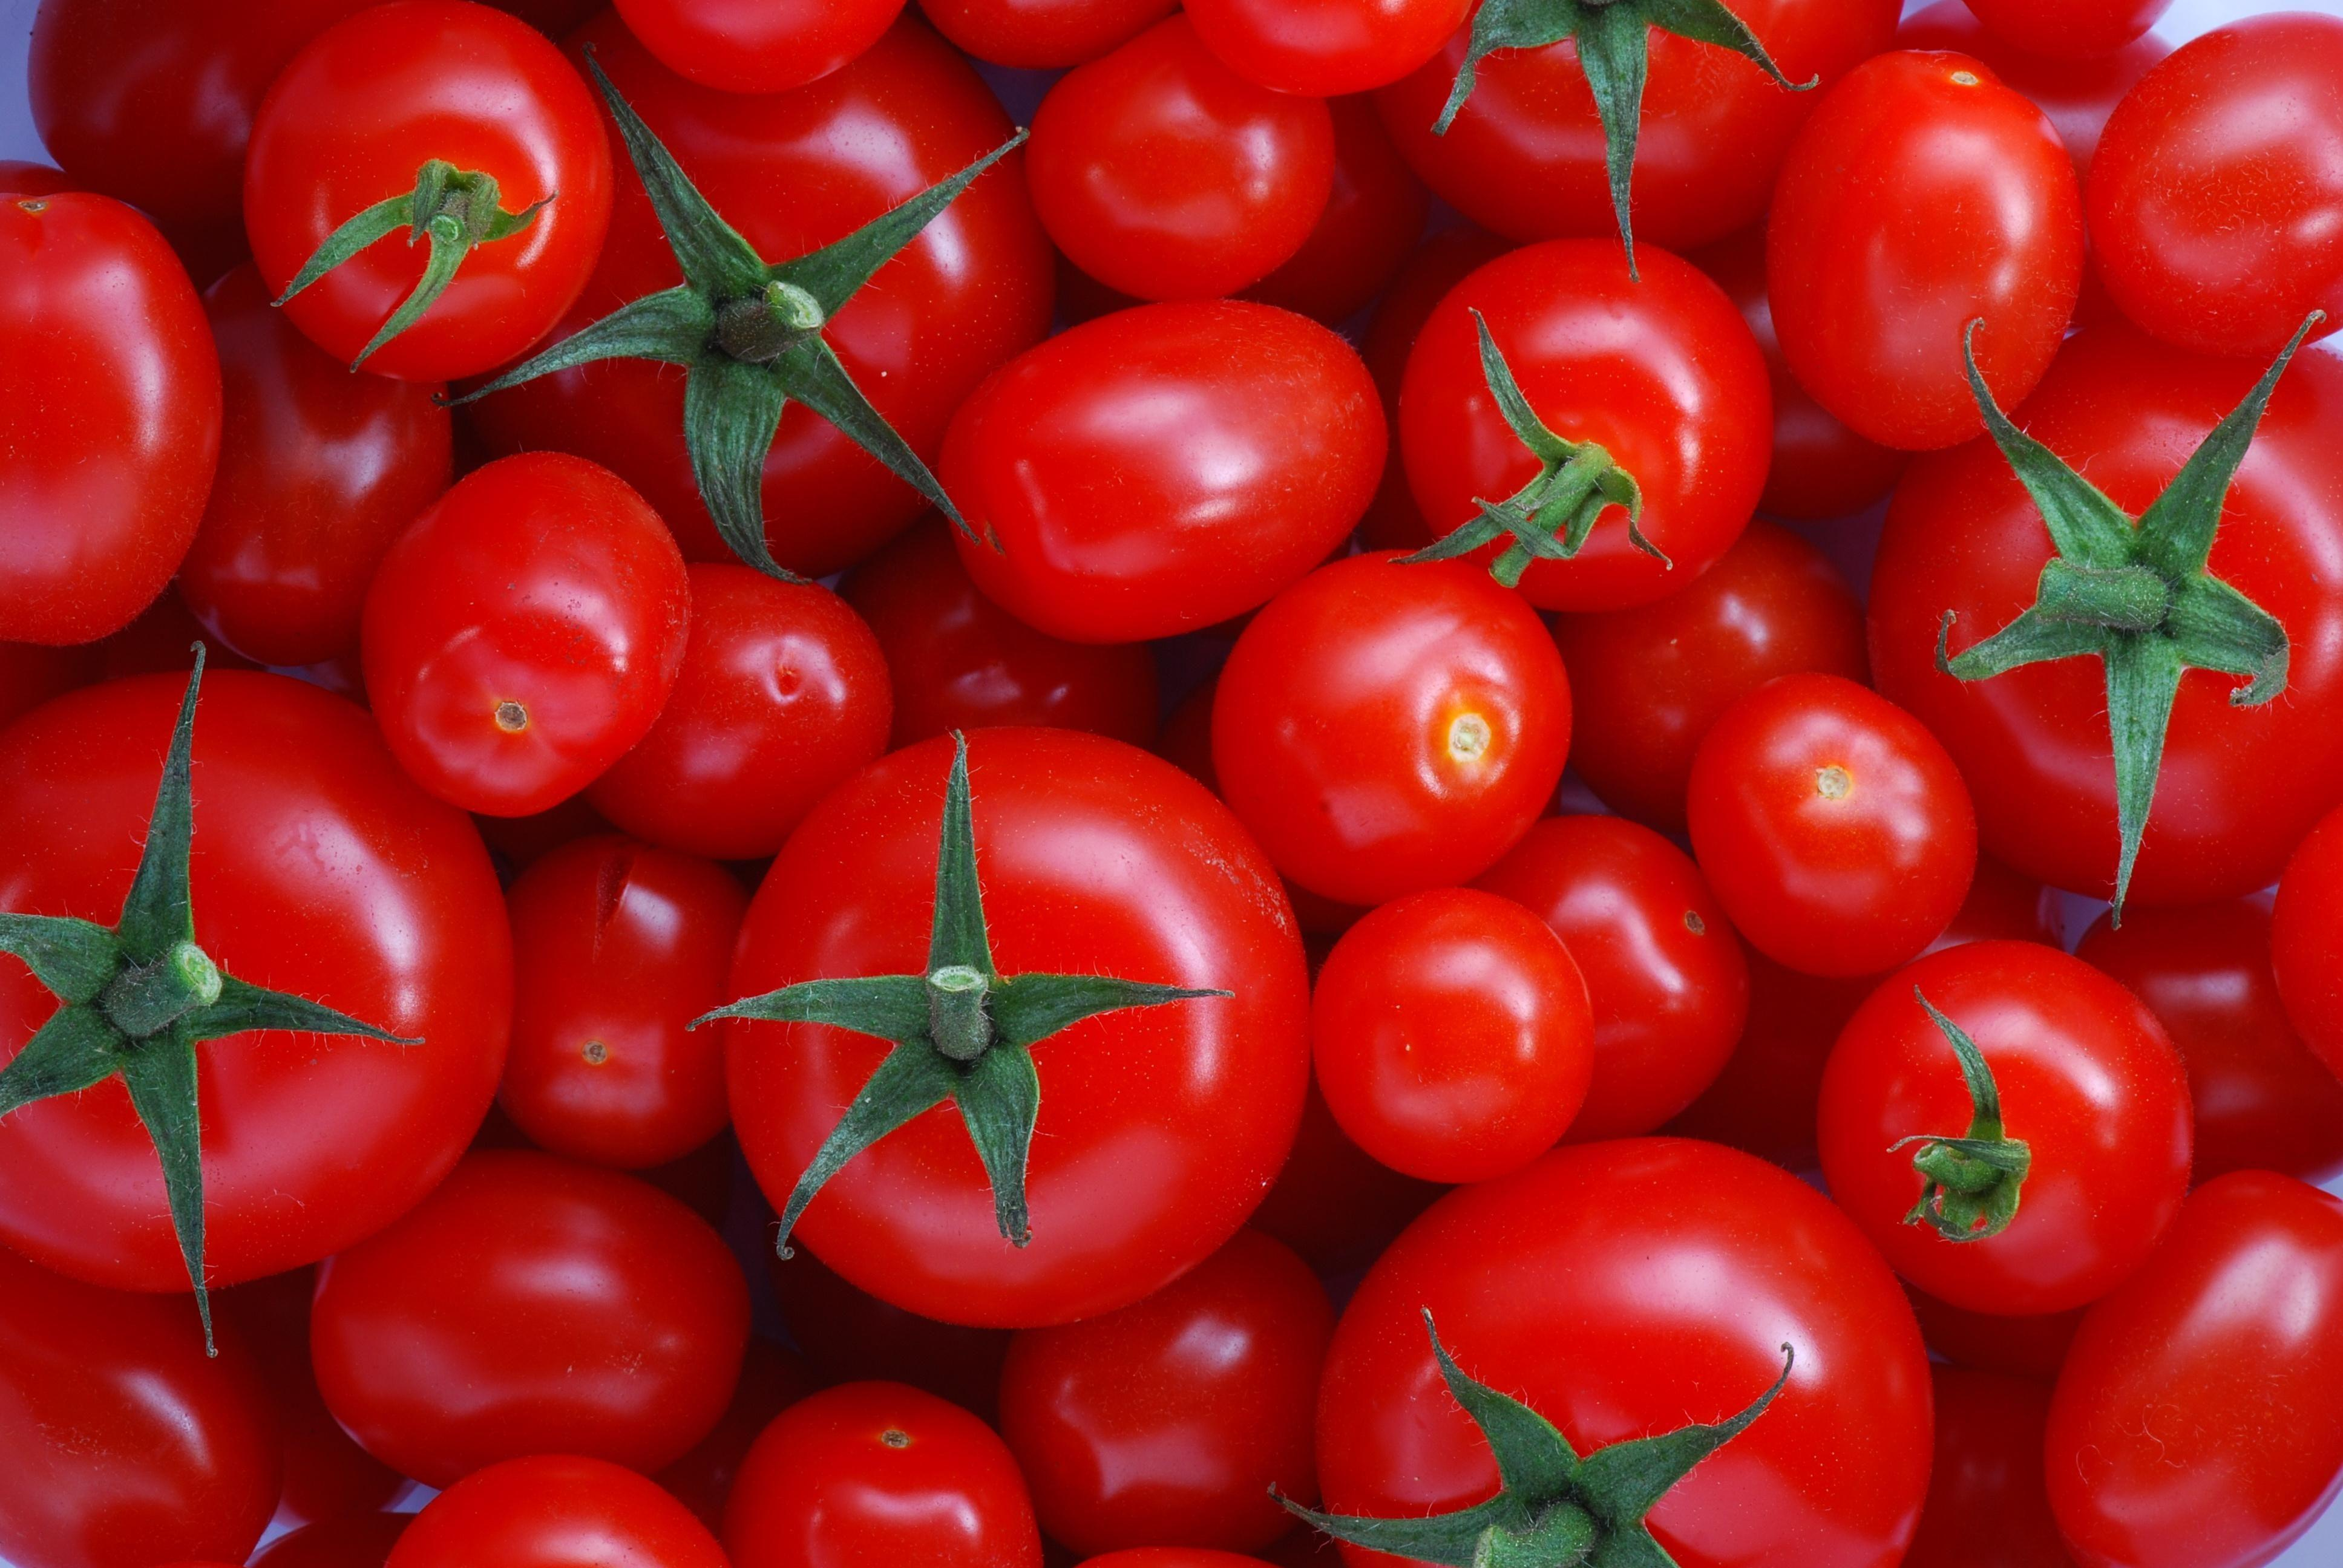 Tomato Wallpapers HD Backgrounds, Image, Pics, Photos Free